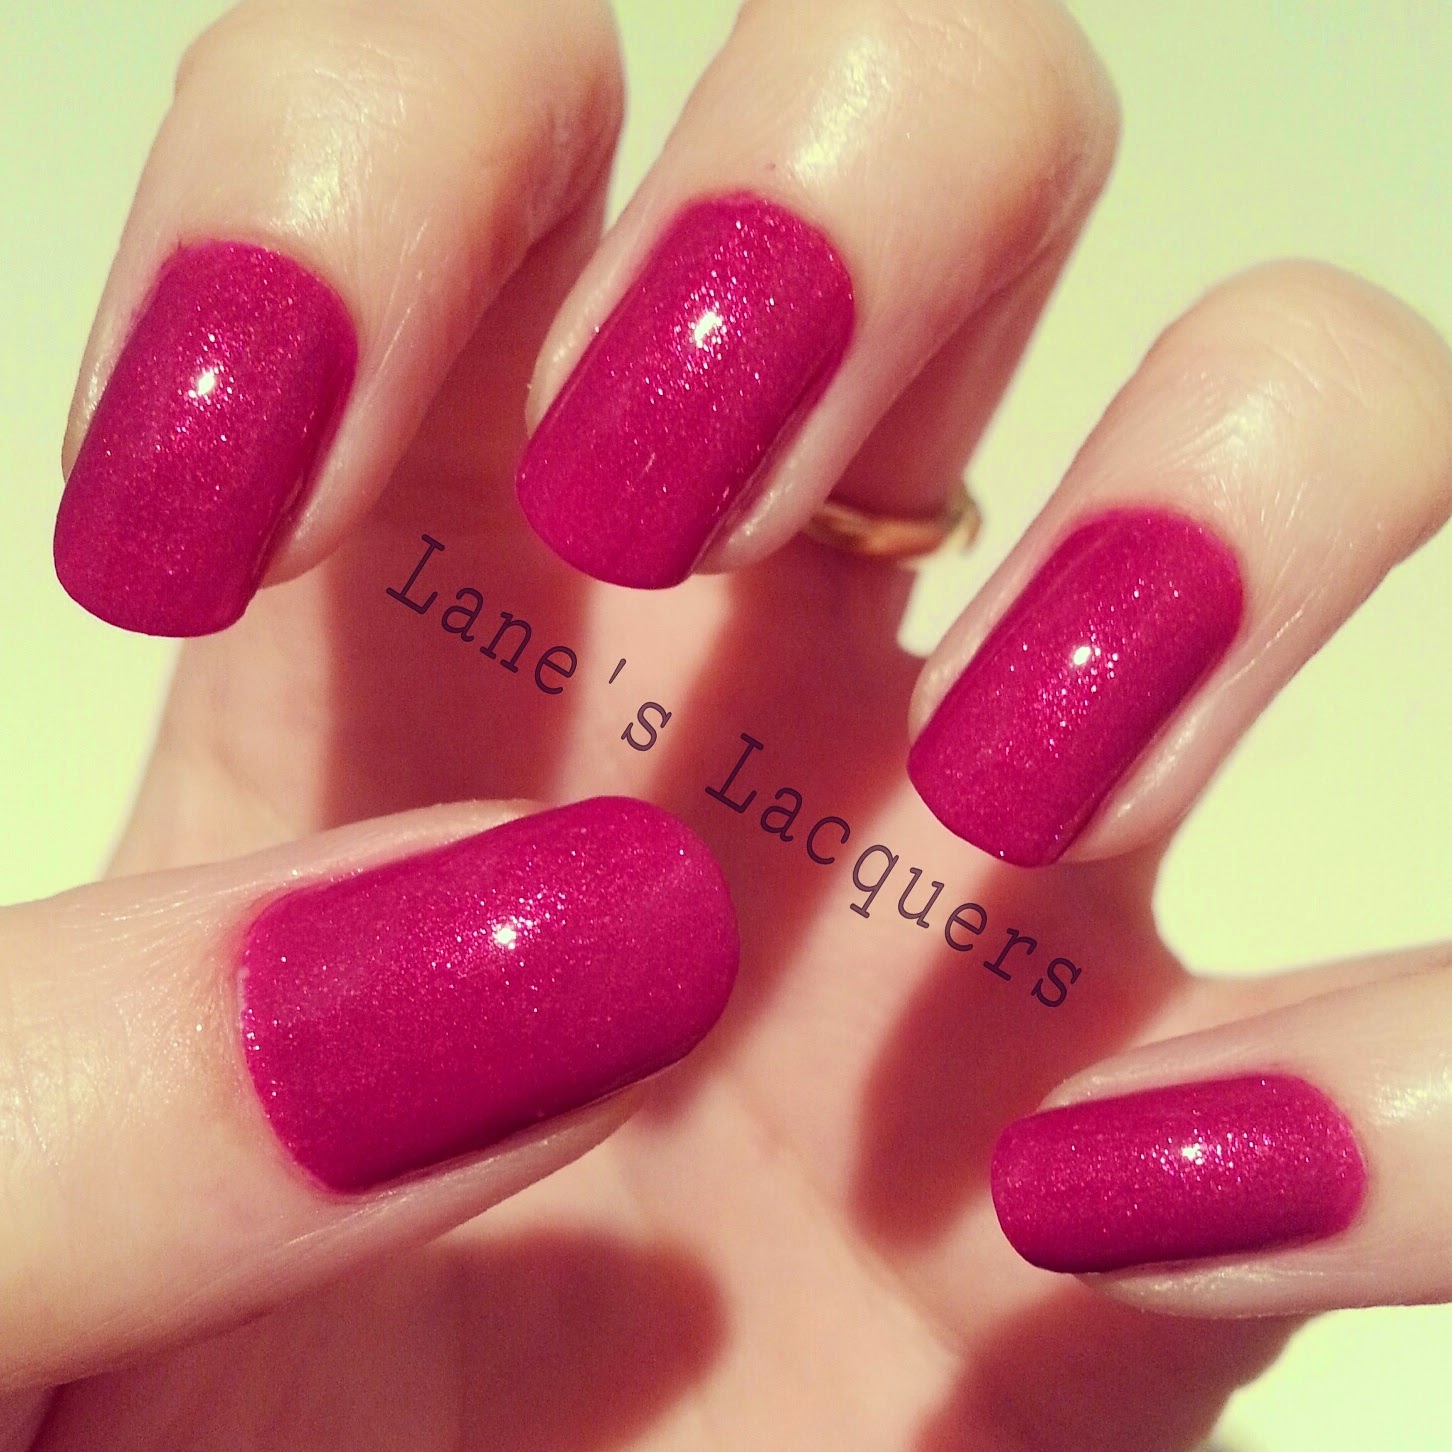 new-models-own-luxe-collection-oval-plum-swatch-manicure